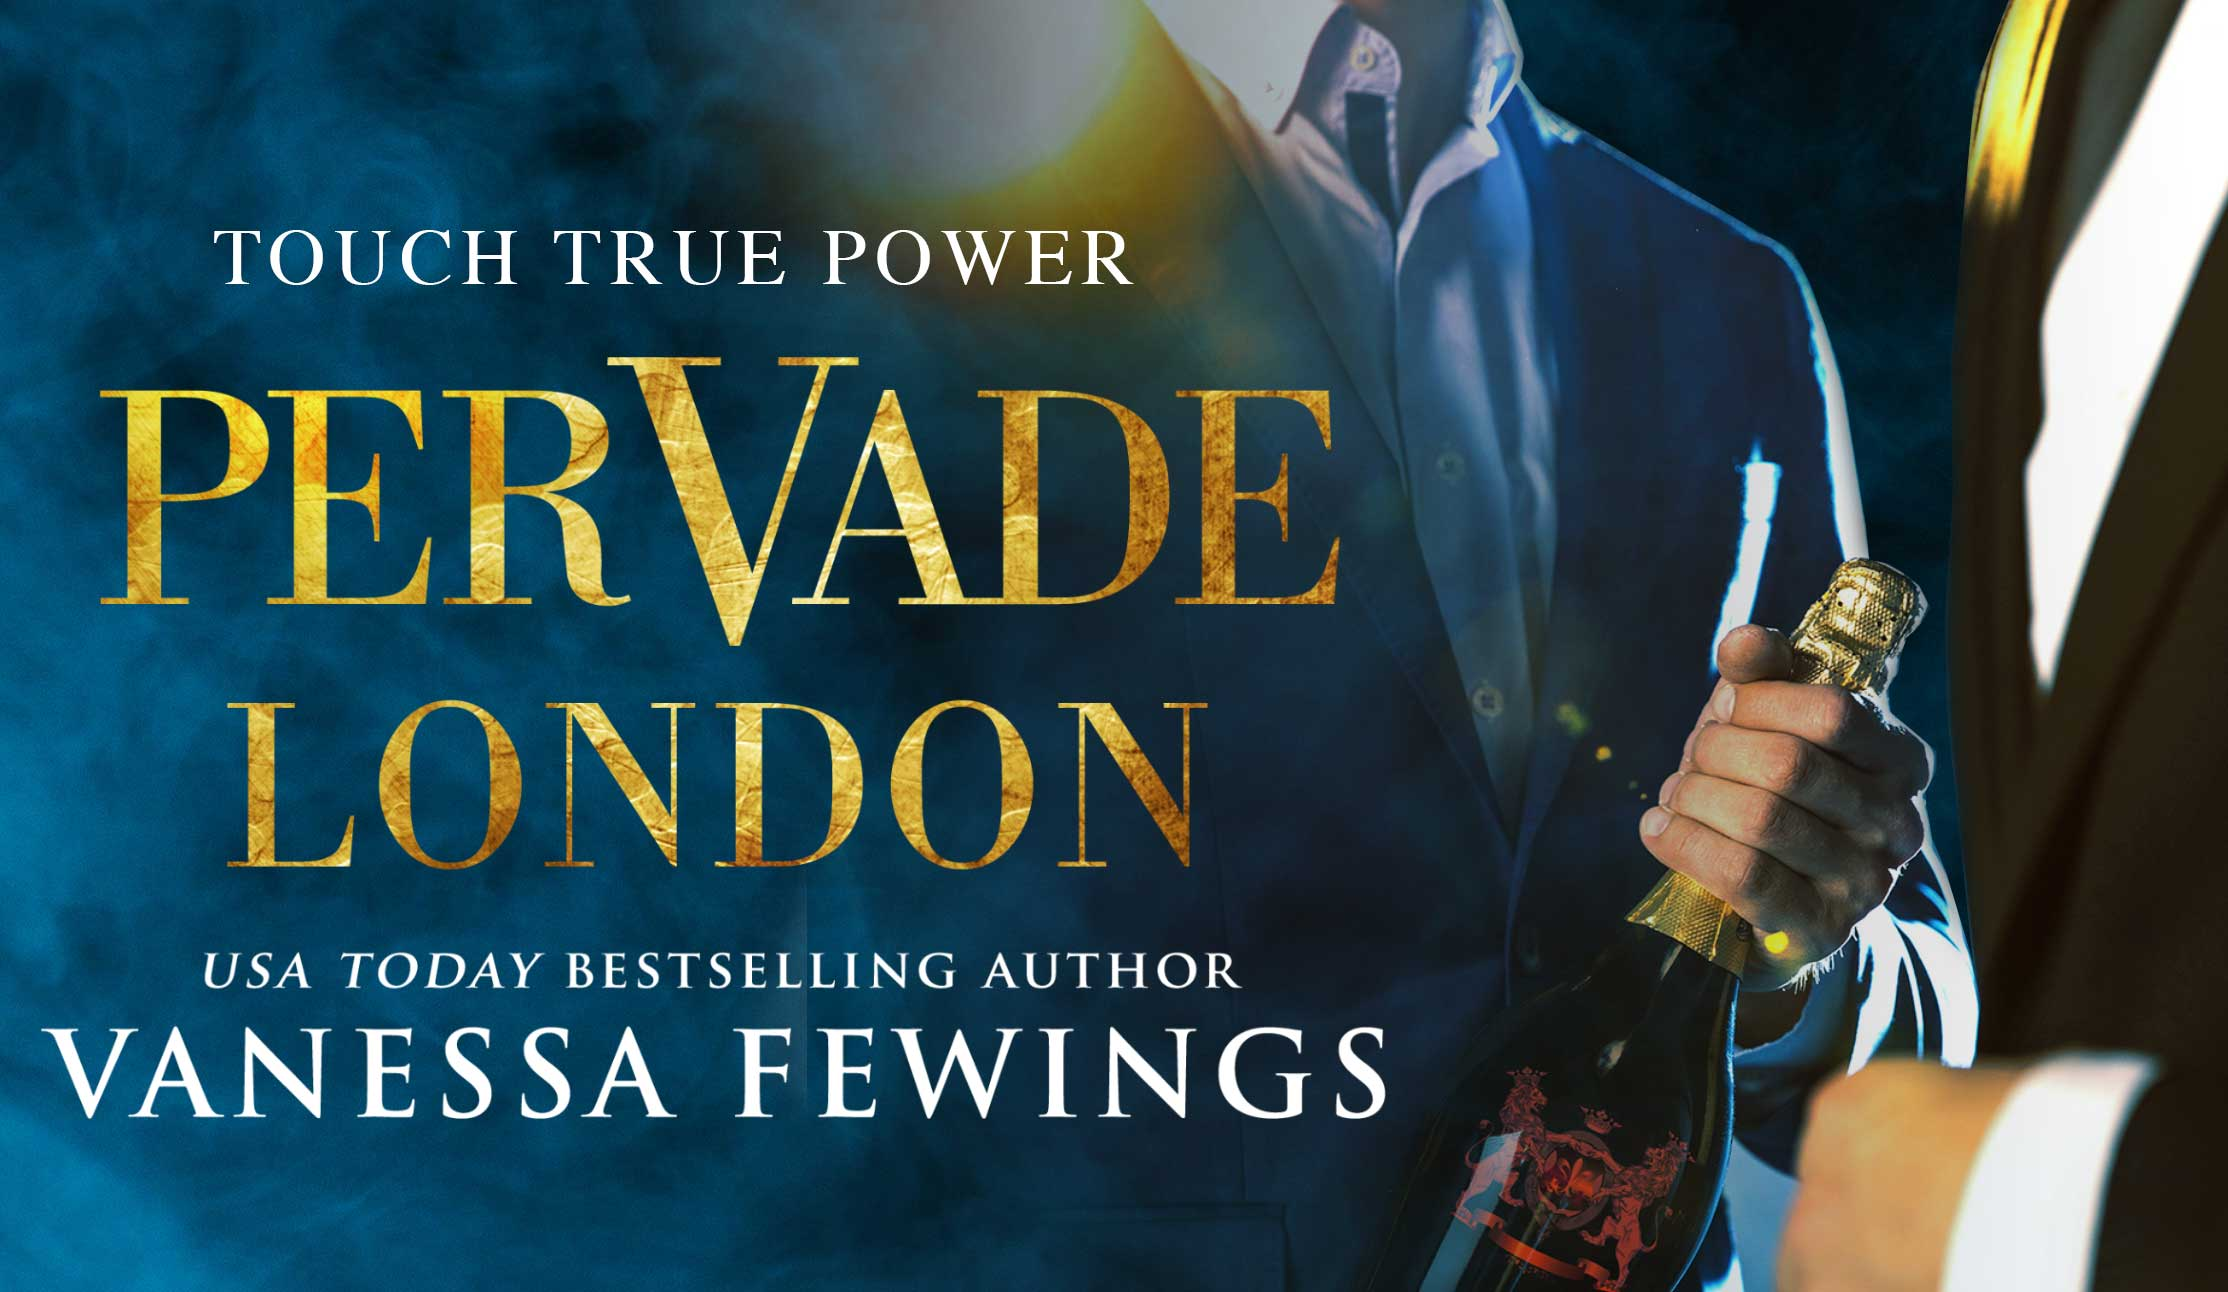 Pervade London - Book One in the New Pervade Duet by USA Today Bestselling author Vanessa Fewings